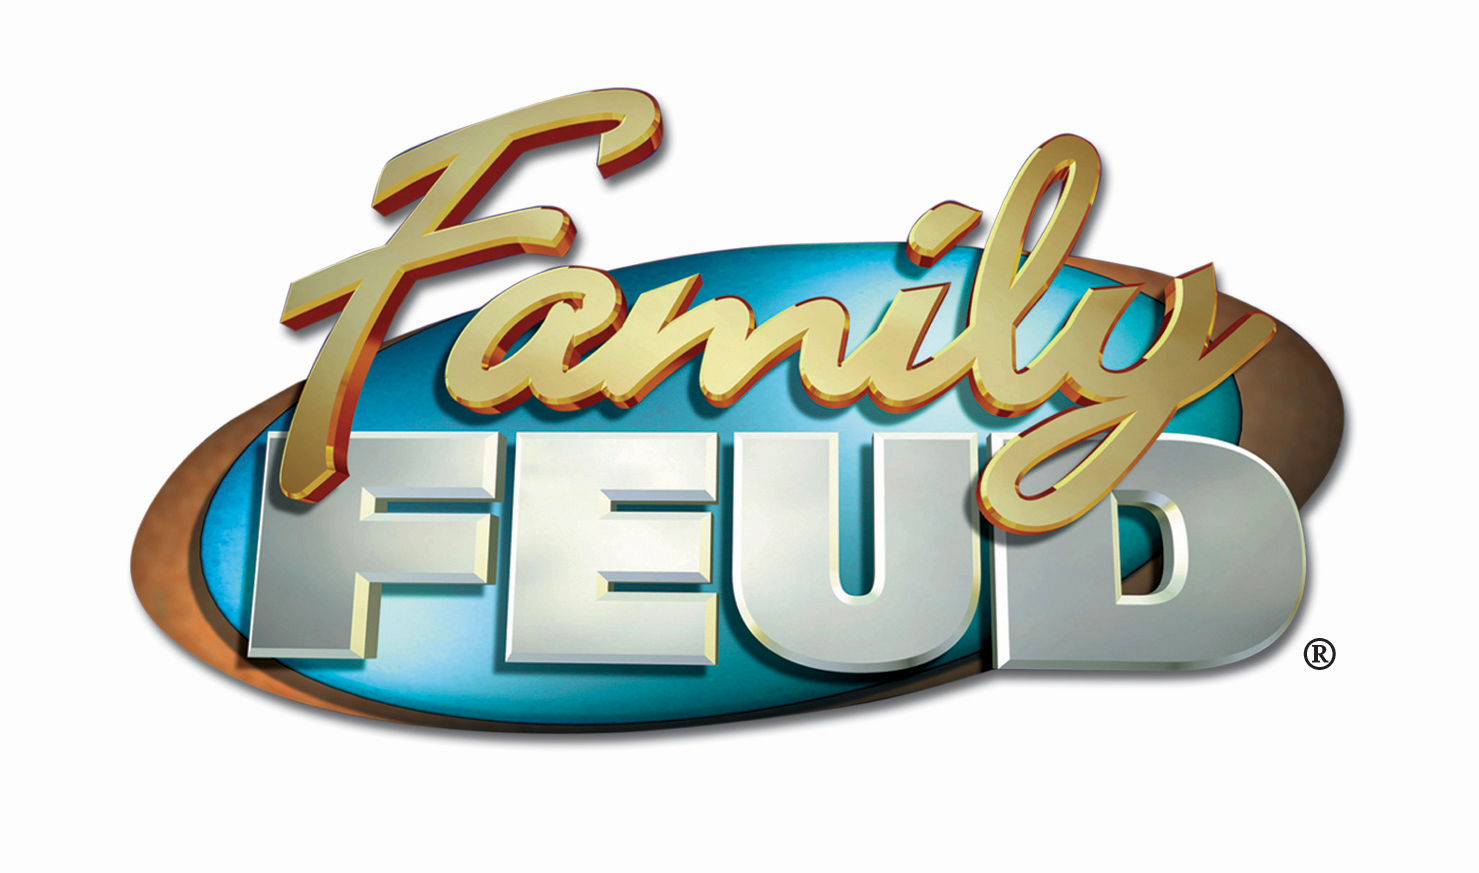 family feud name tag template choice image - templates design ideas, Powerpoint templates